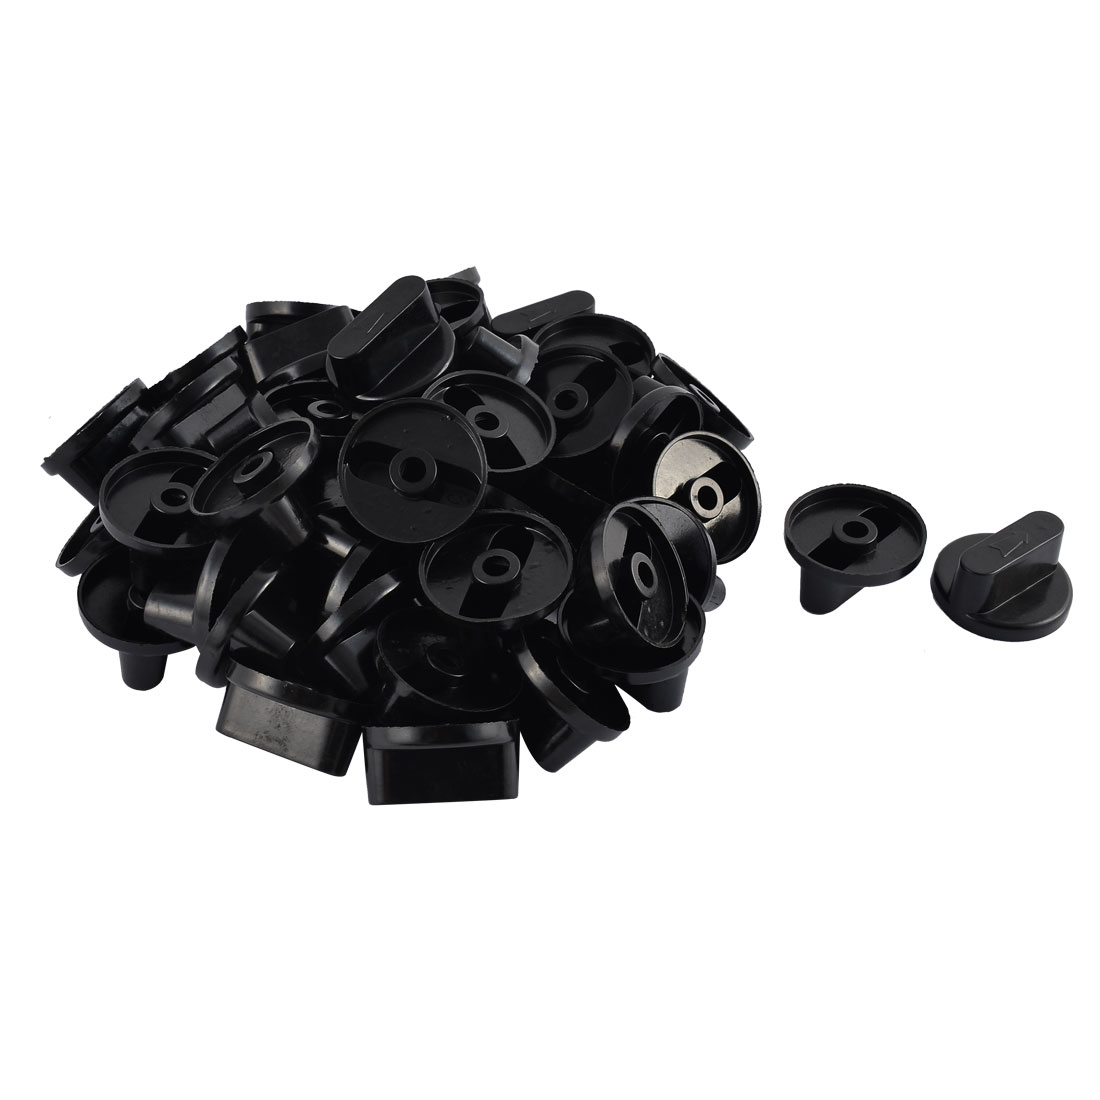 Kitchen Gas Stove Oven Plastic Rotary Switch Range Knob Black 4.5cm Dia 50pcs